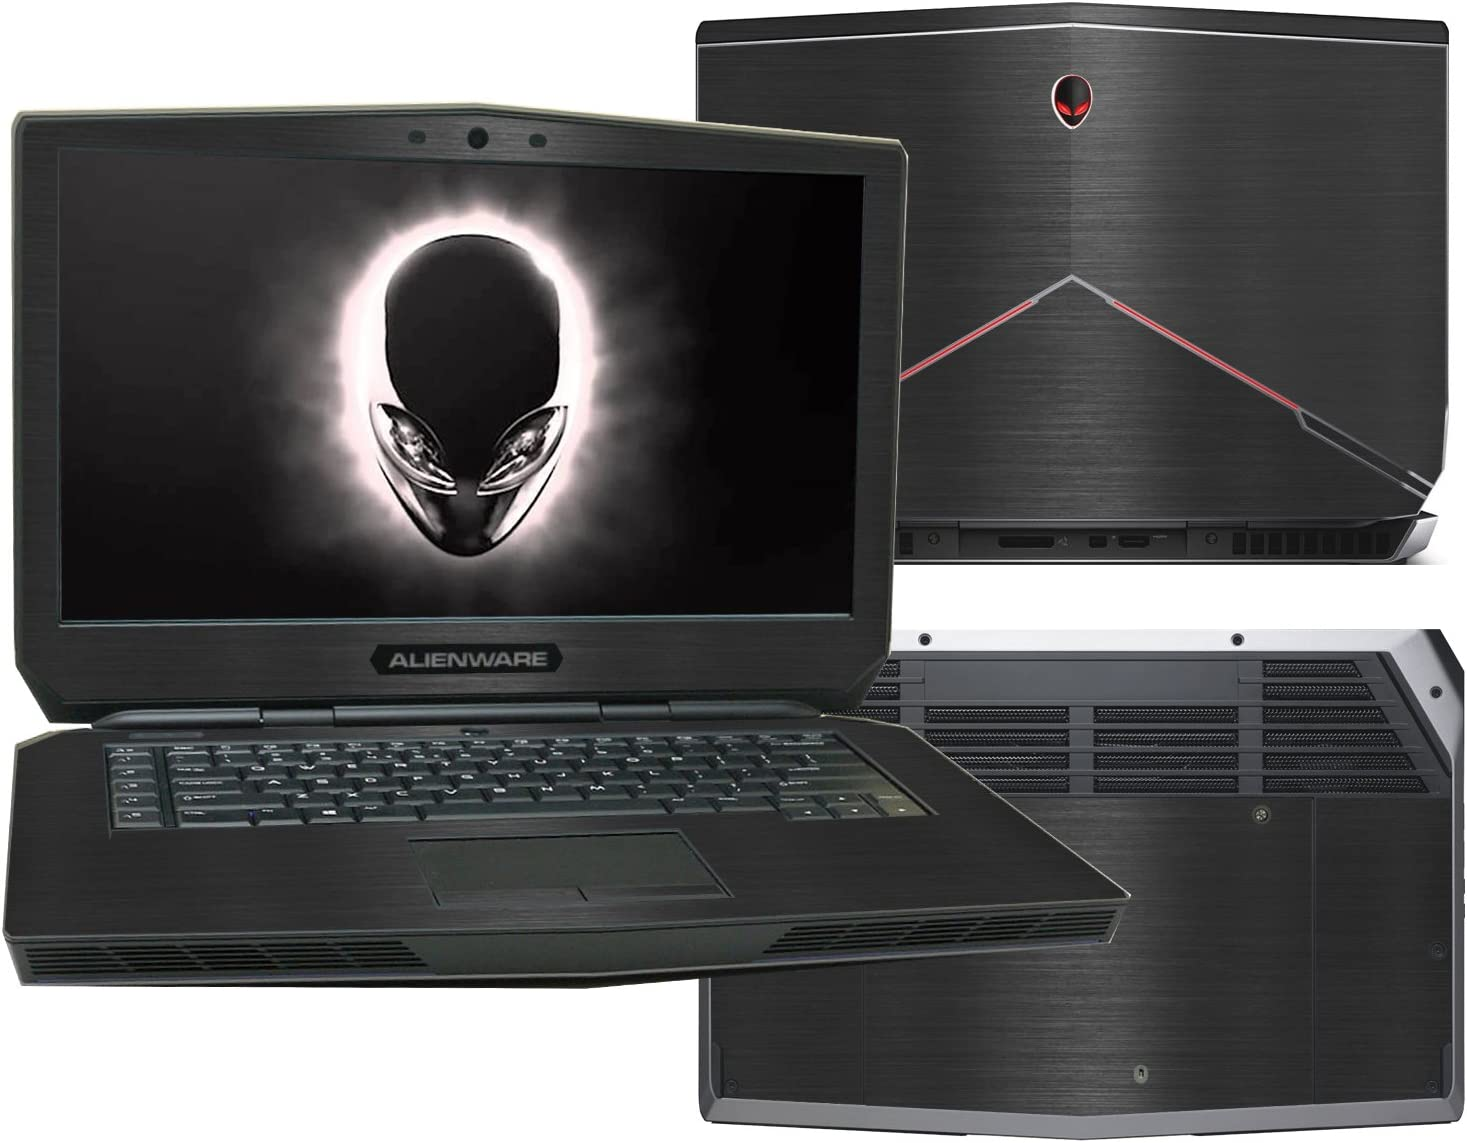 Large special price !! New color Decalrus - Protective Decal for 15 Alienware 2015 Non-To Release